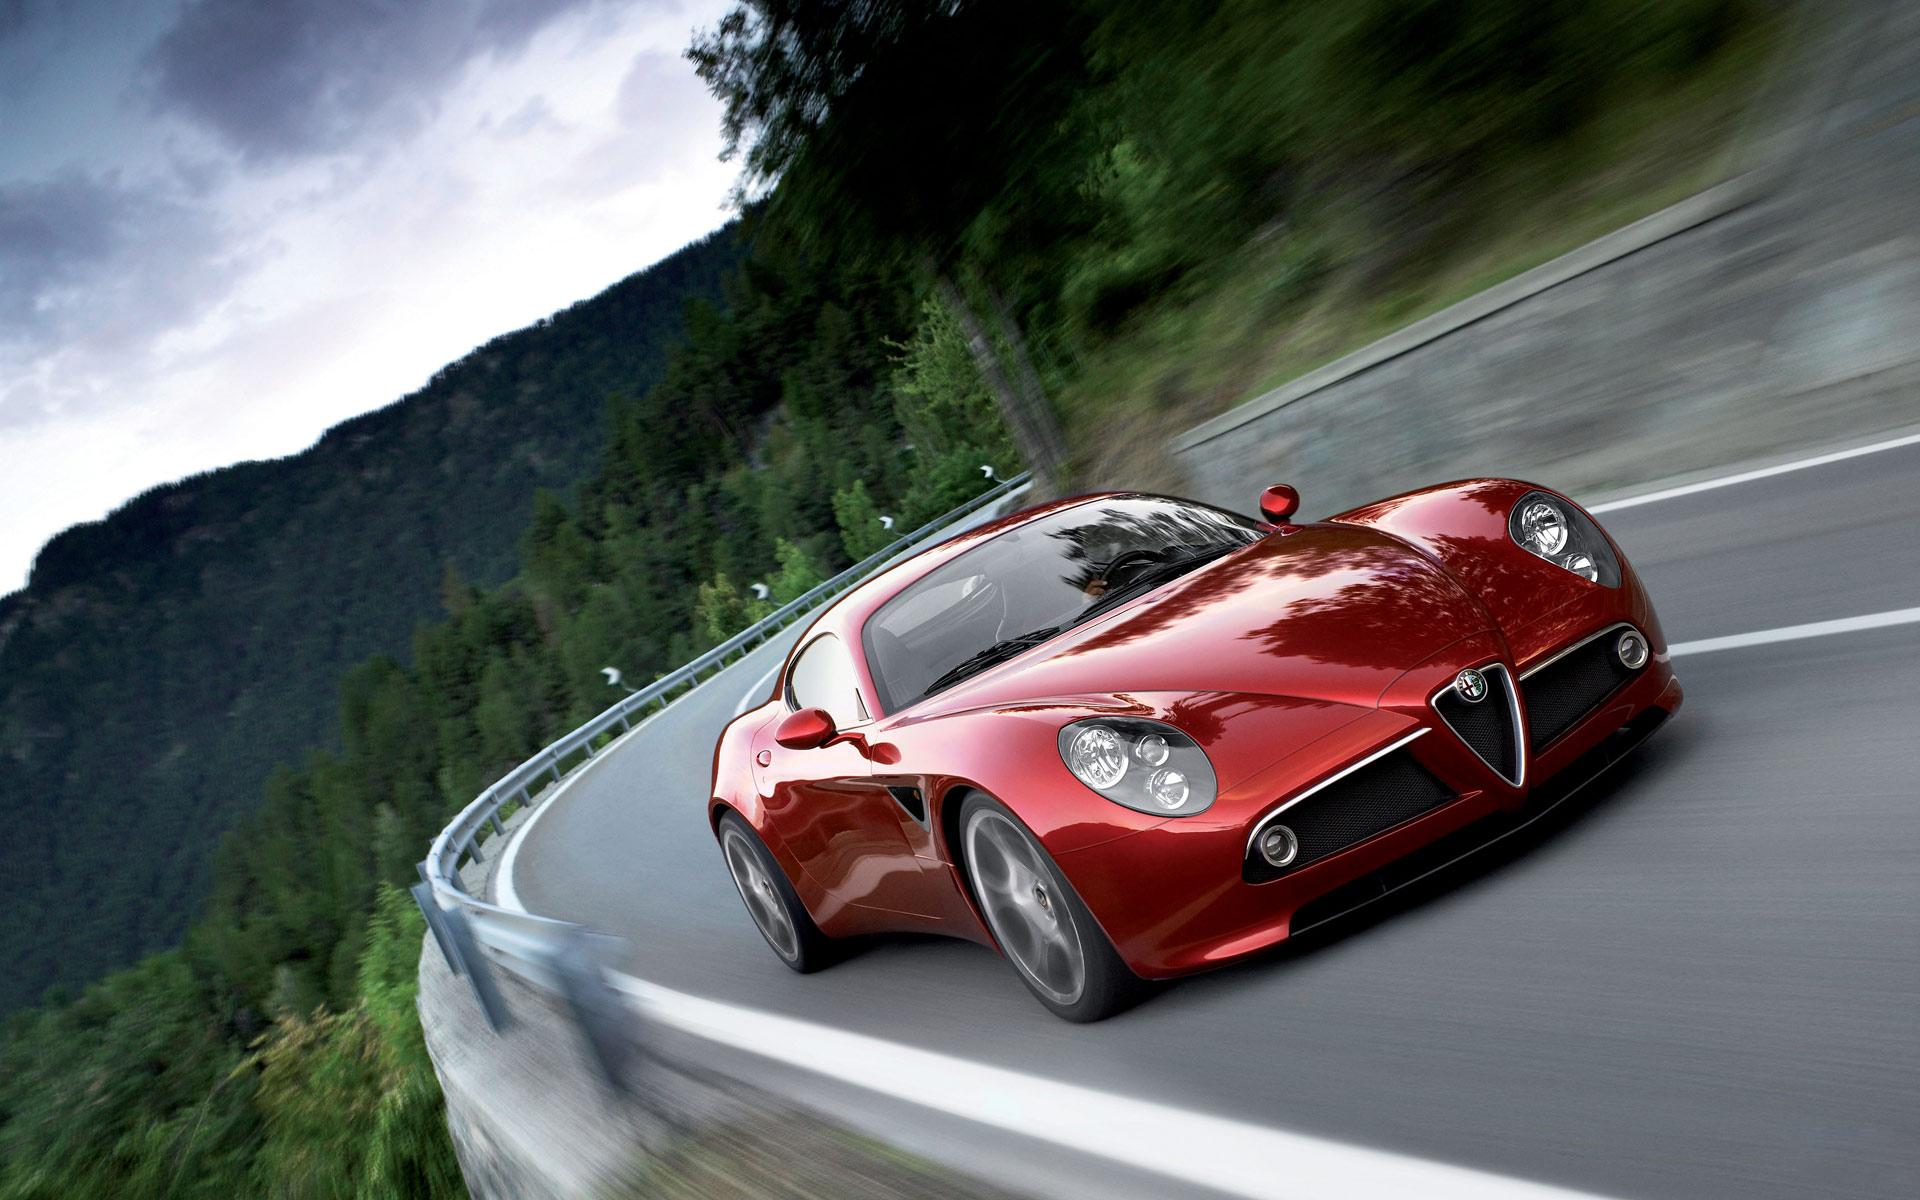 The Best Car Ever Wallpapers Wallpaper Cave